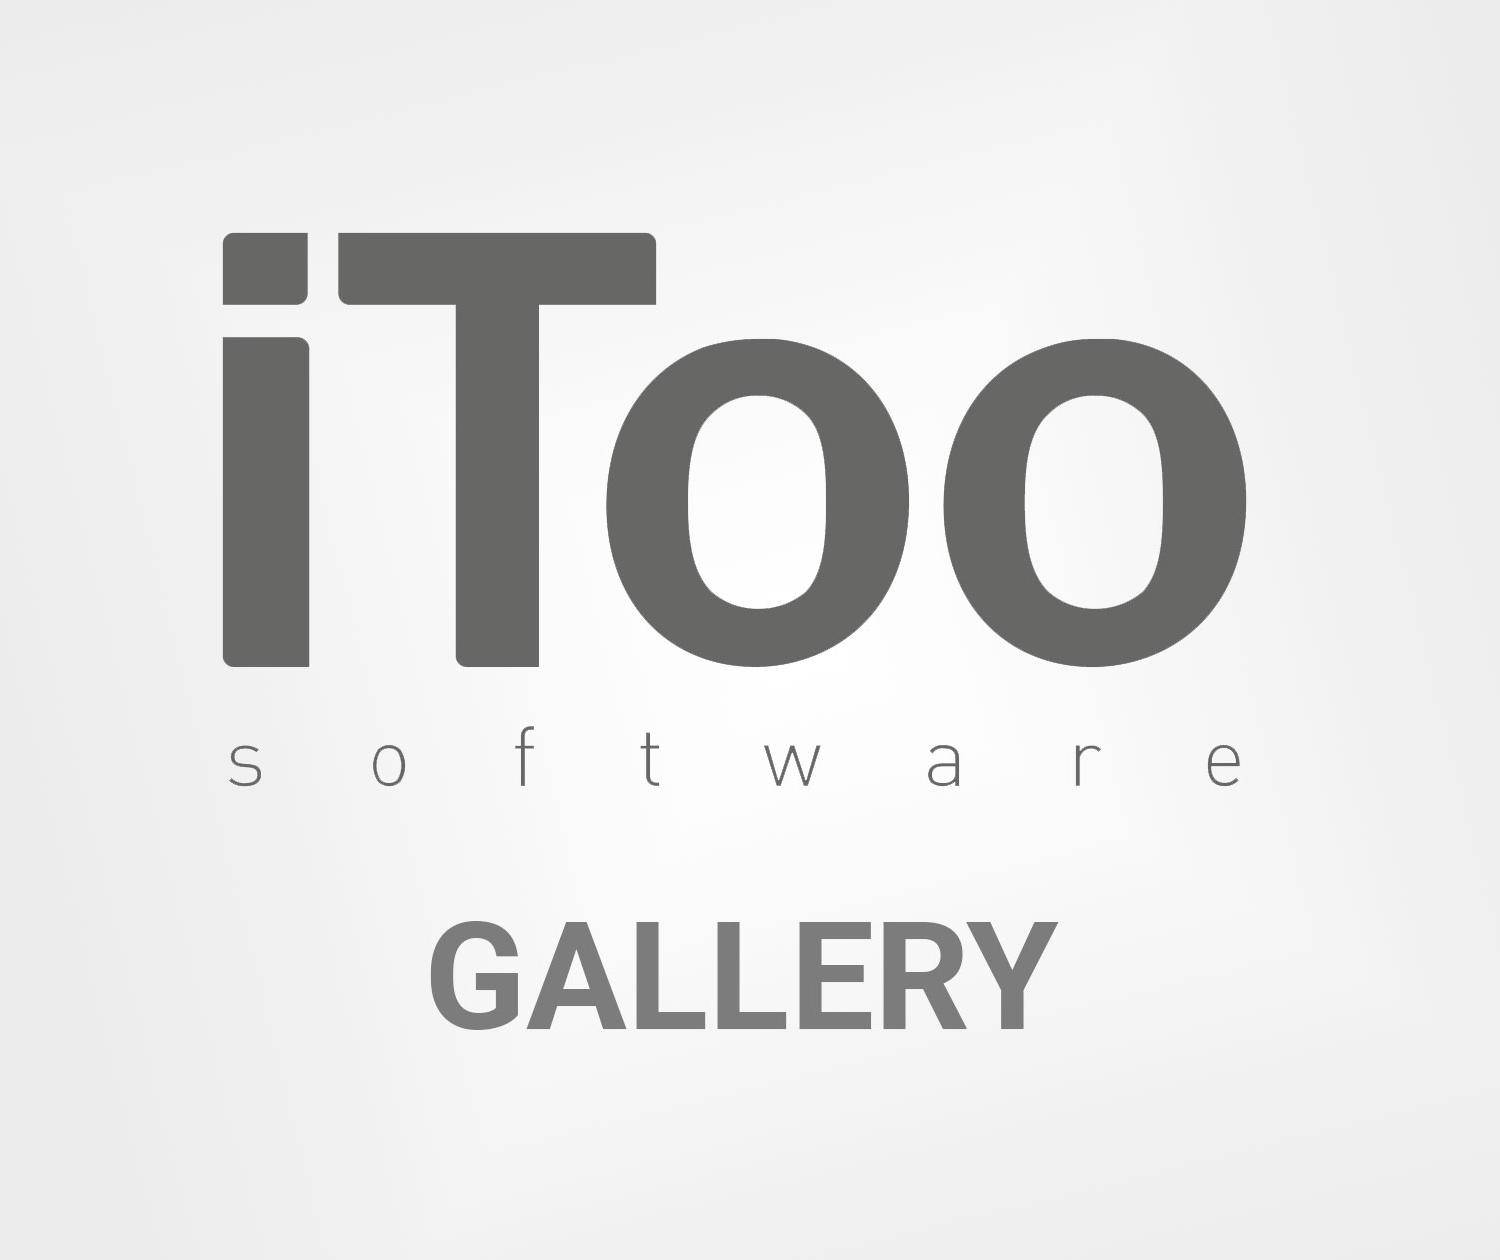 Gallery Redesigned